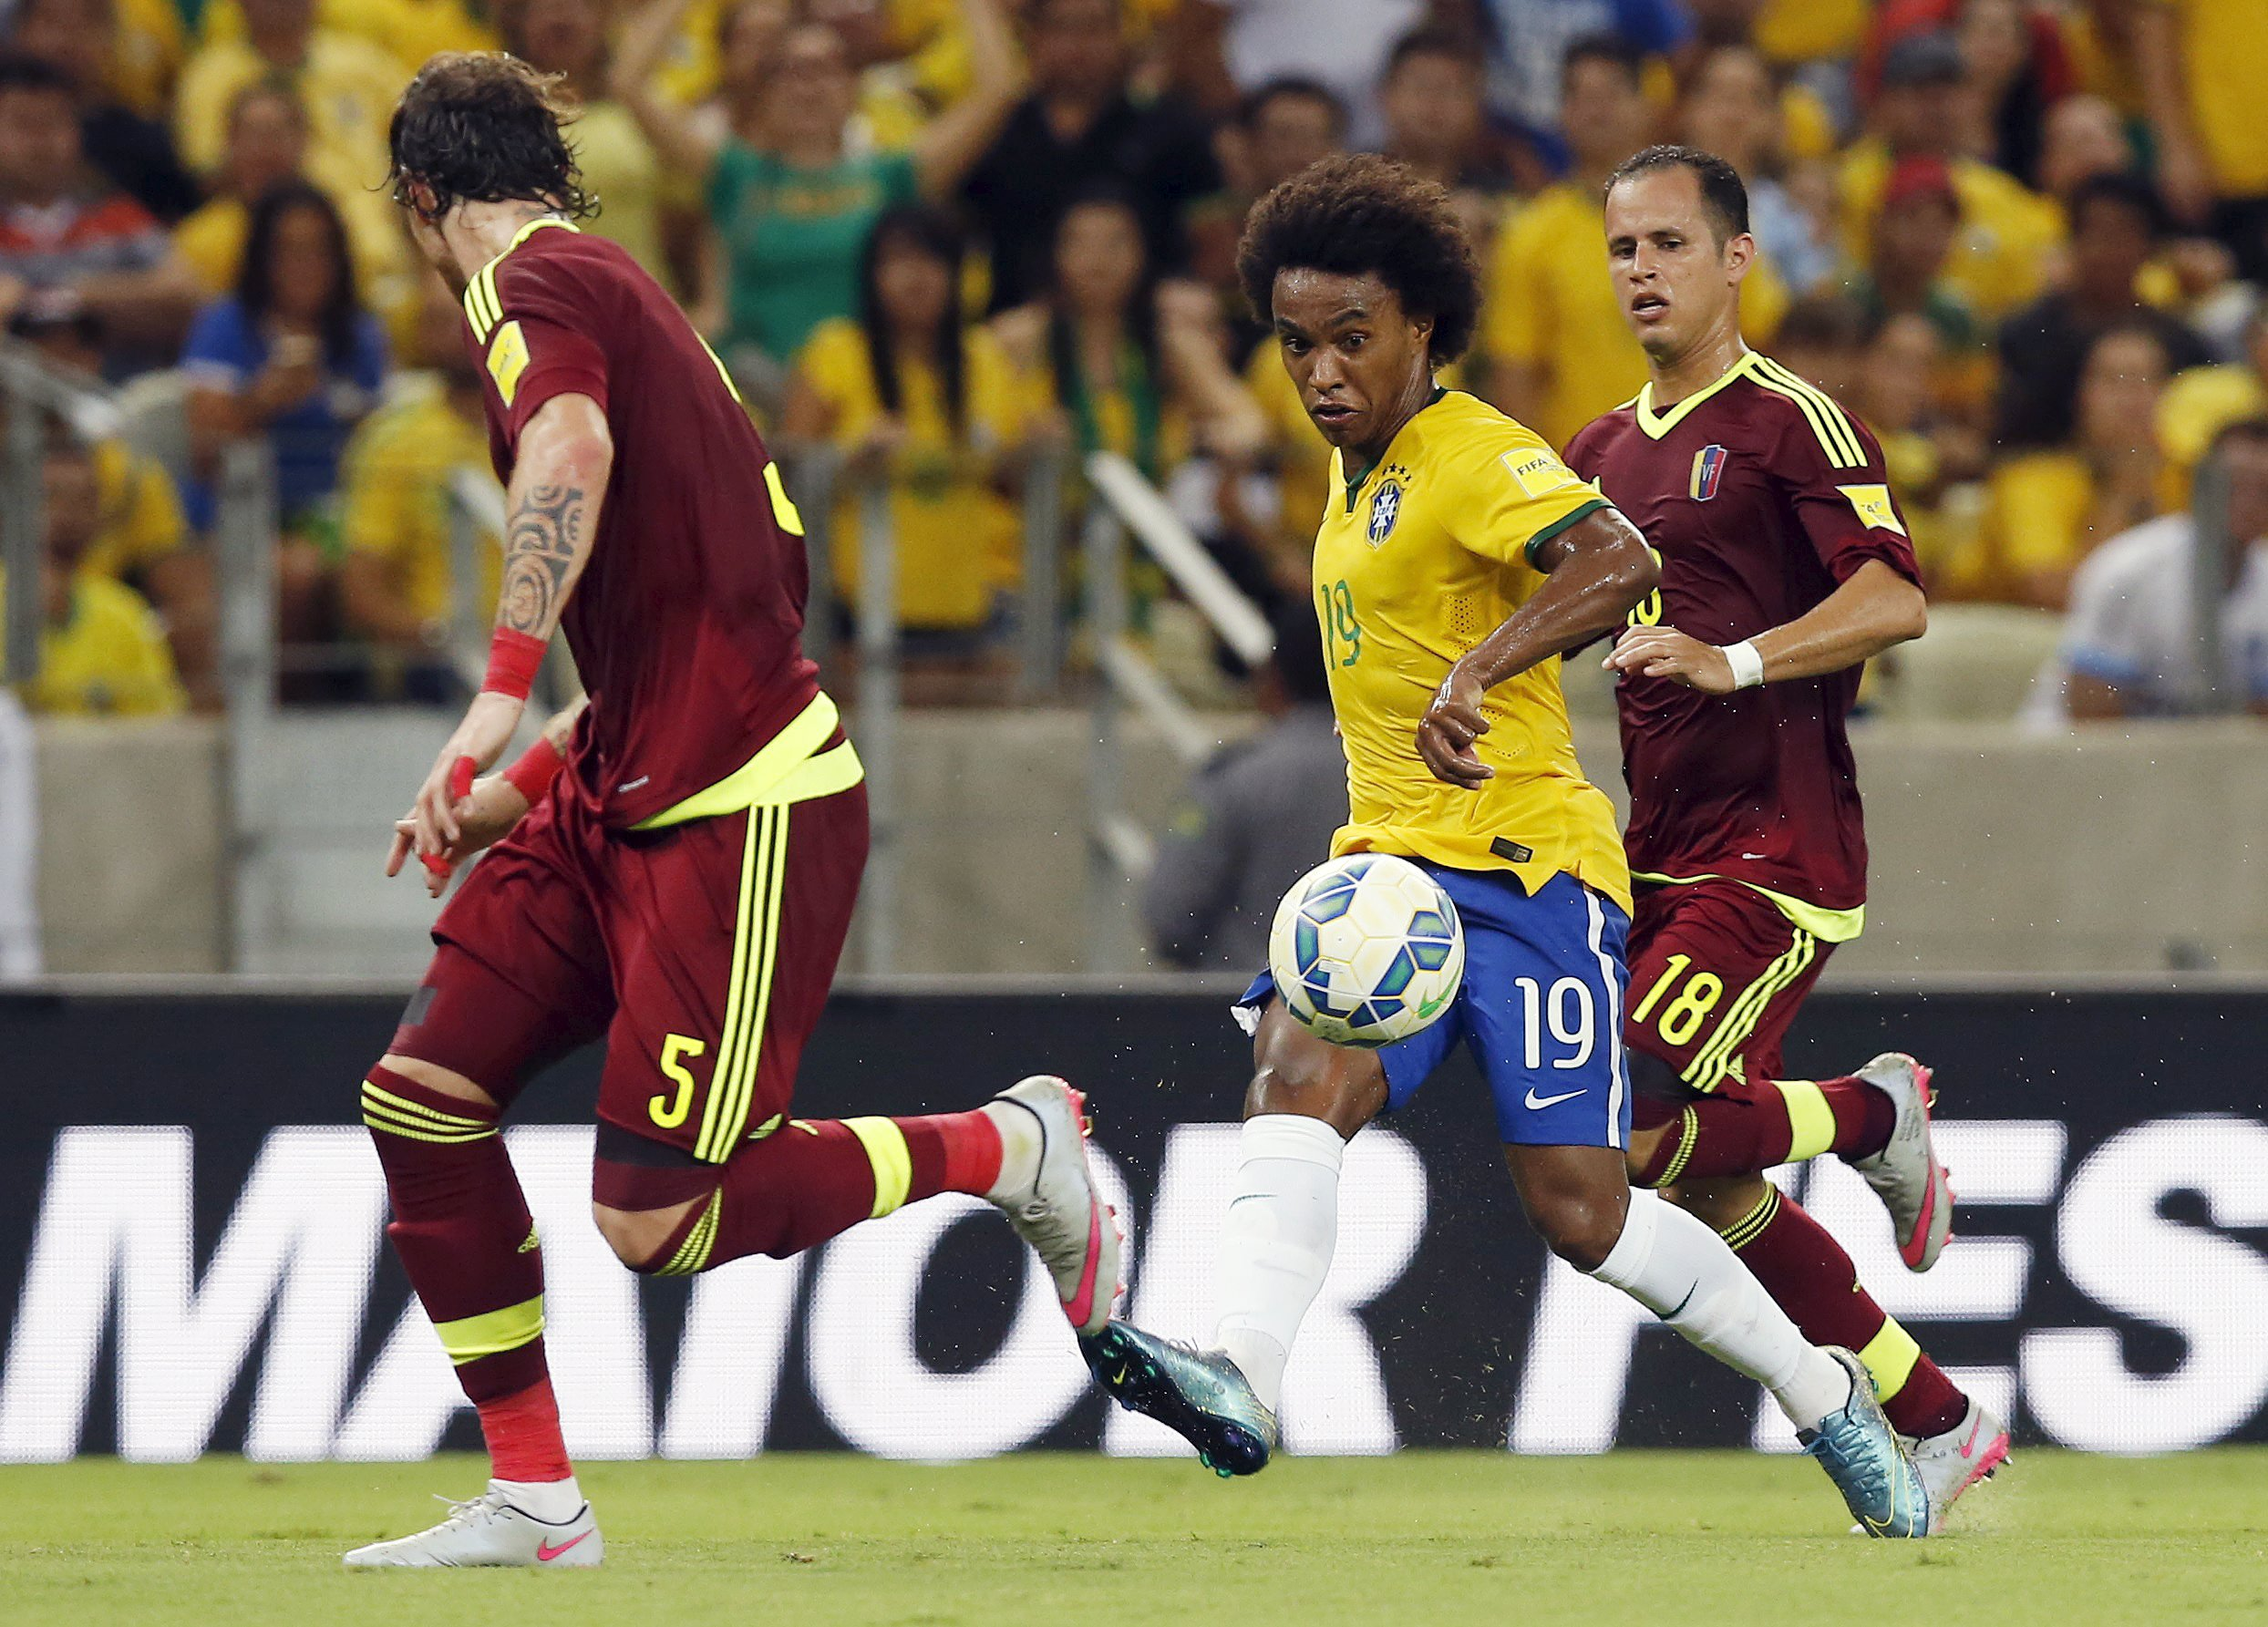 Willian (C) of Brazil kicks the ball between Fernando Amorebieta (L) and Alejandro Guerra of Venezuela during their 2018 World Cup qualifying soccer match in Fortaleza, Brazil, October 13, 2015.   REUTERS/Paulo Whitaker